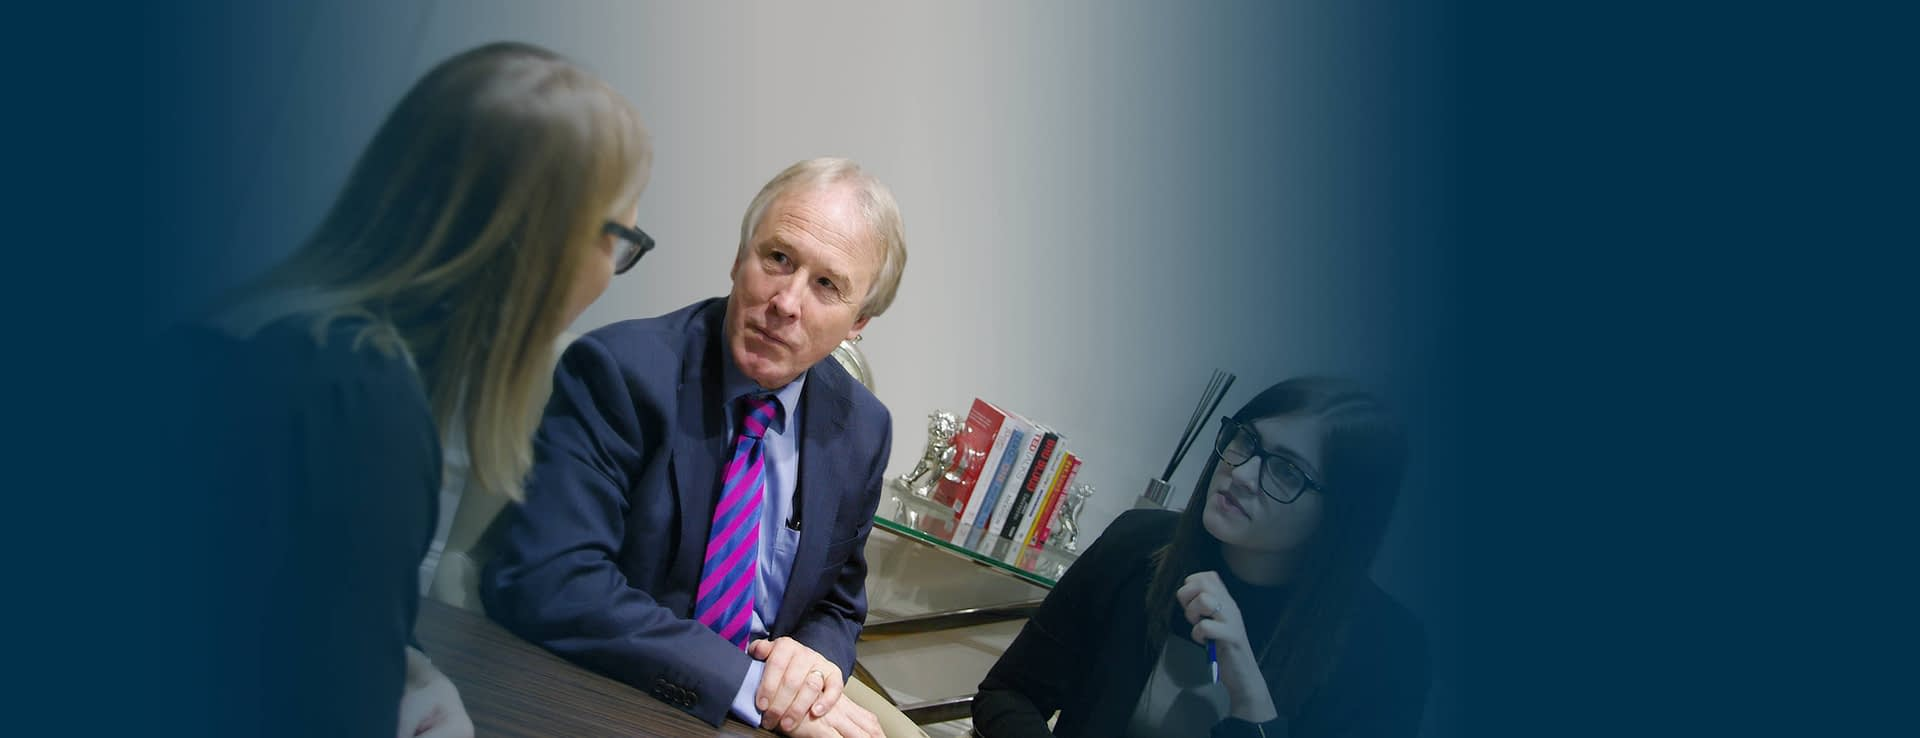 Tax Planning at HB Accountants in Hoddesdon